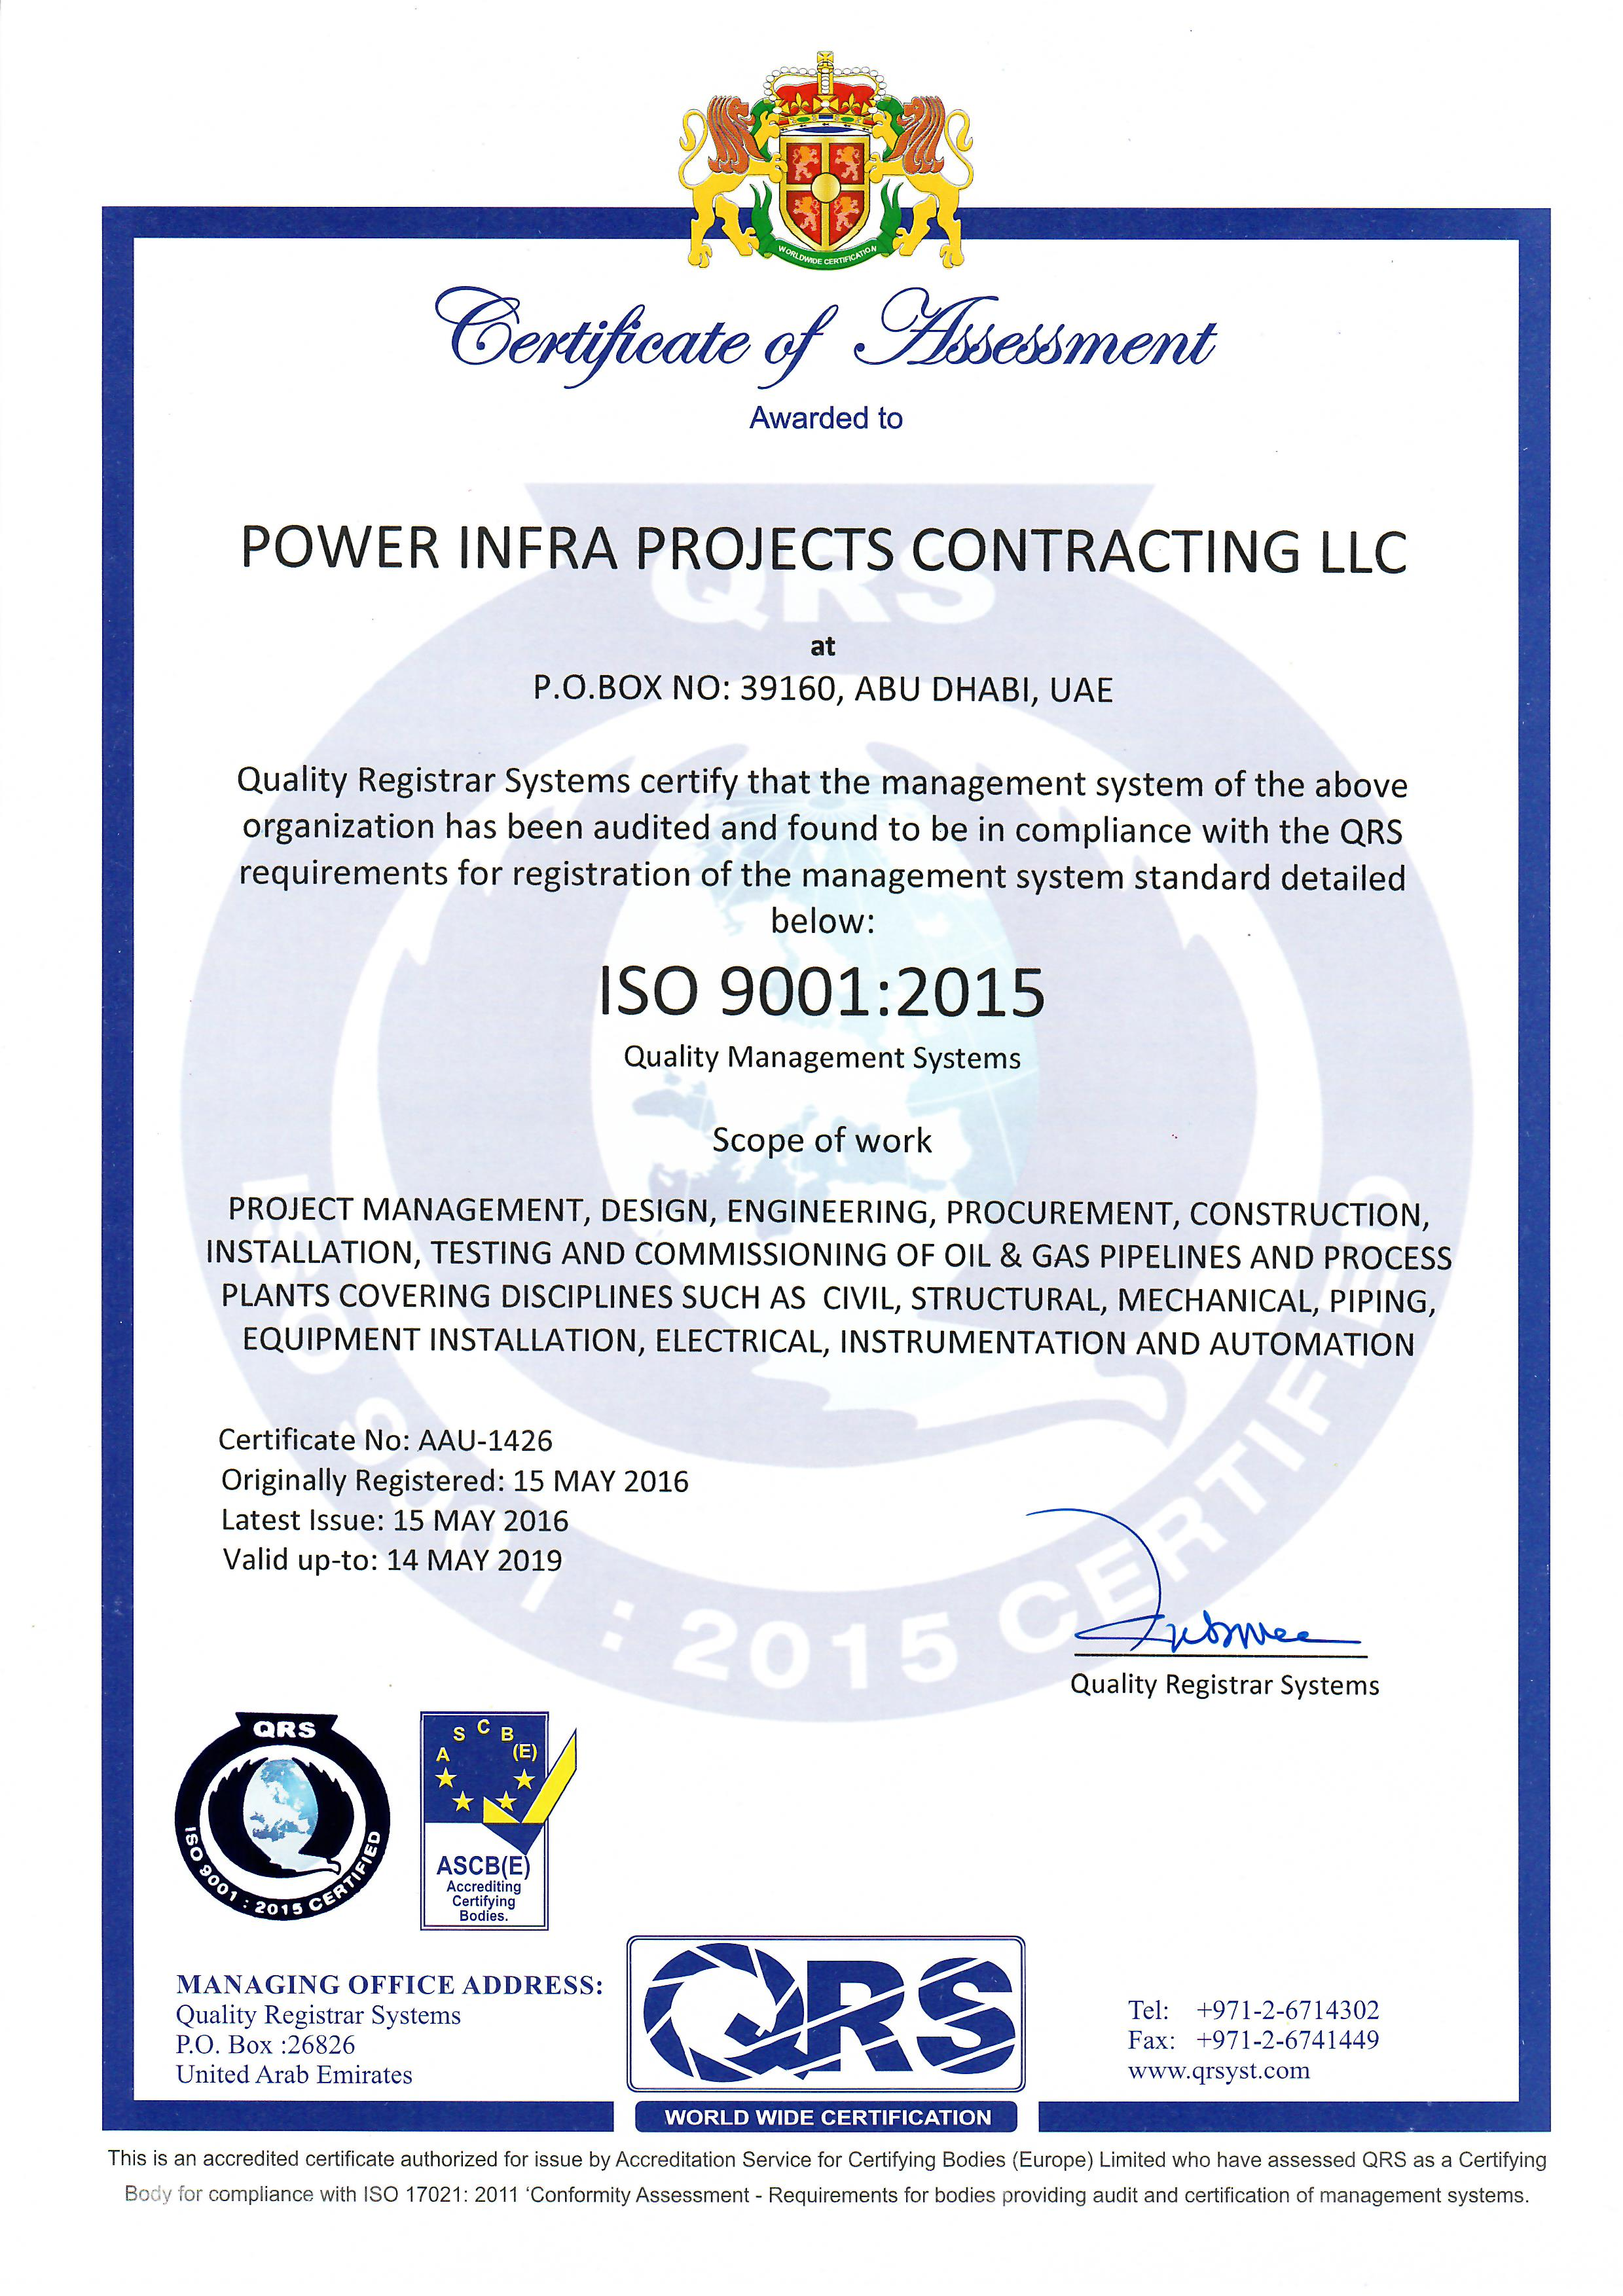 Power Infra Projects Contracting Llc